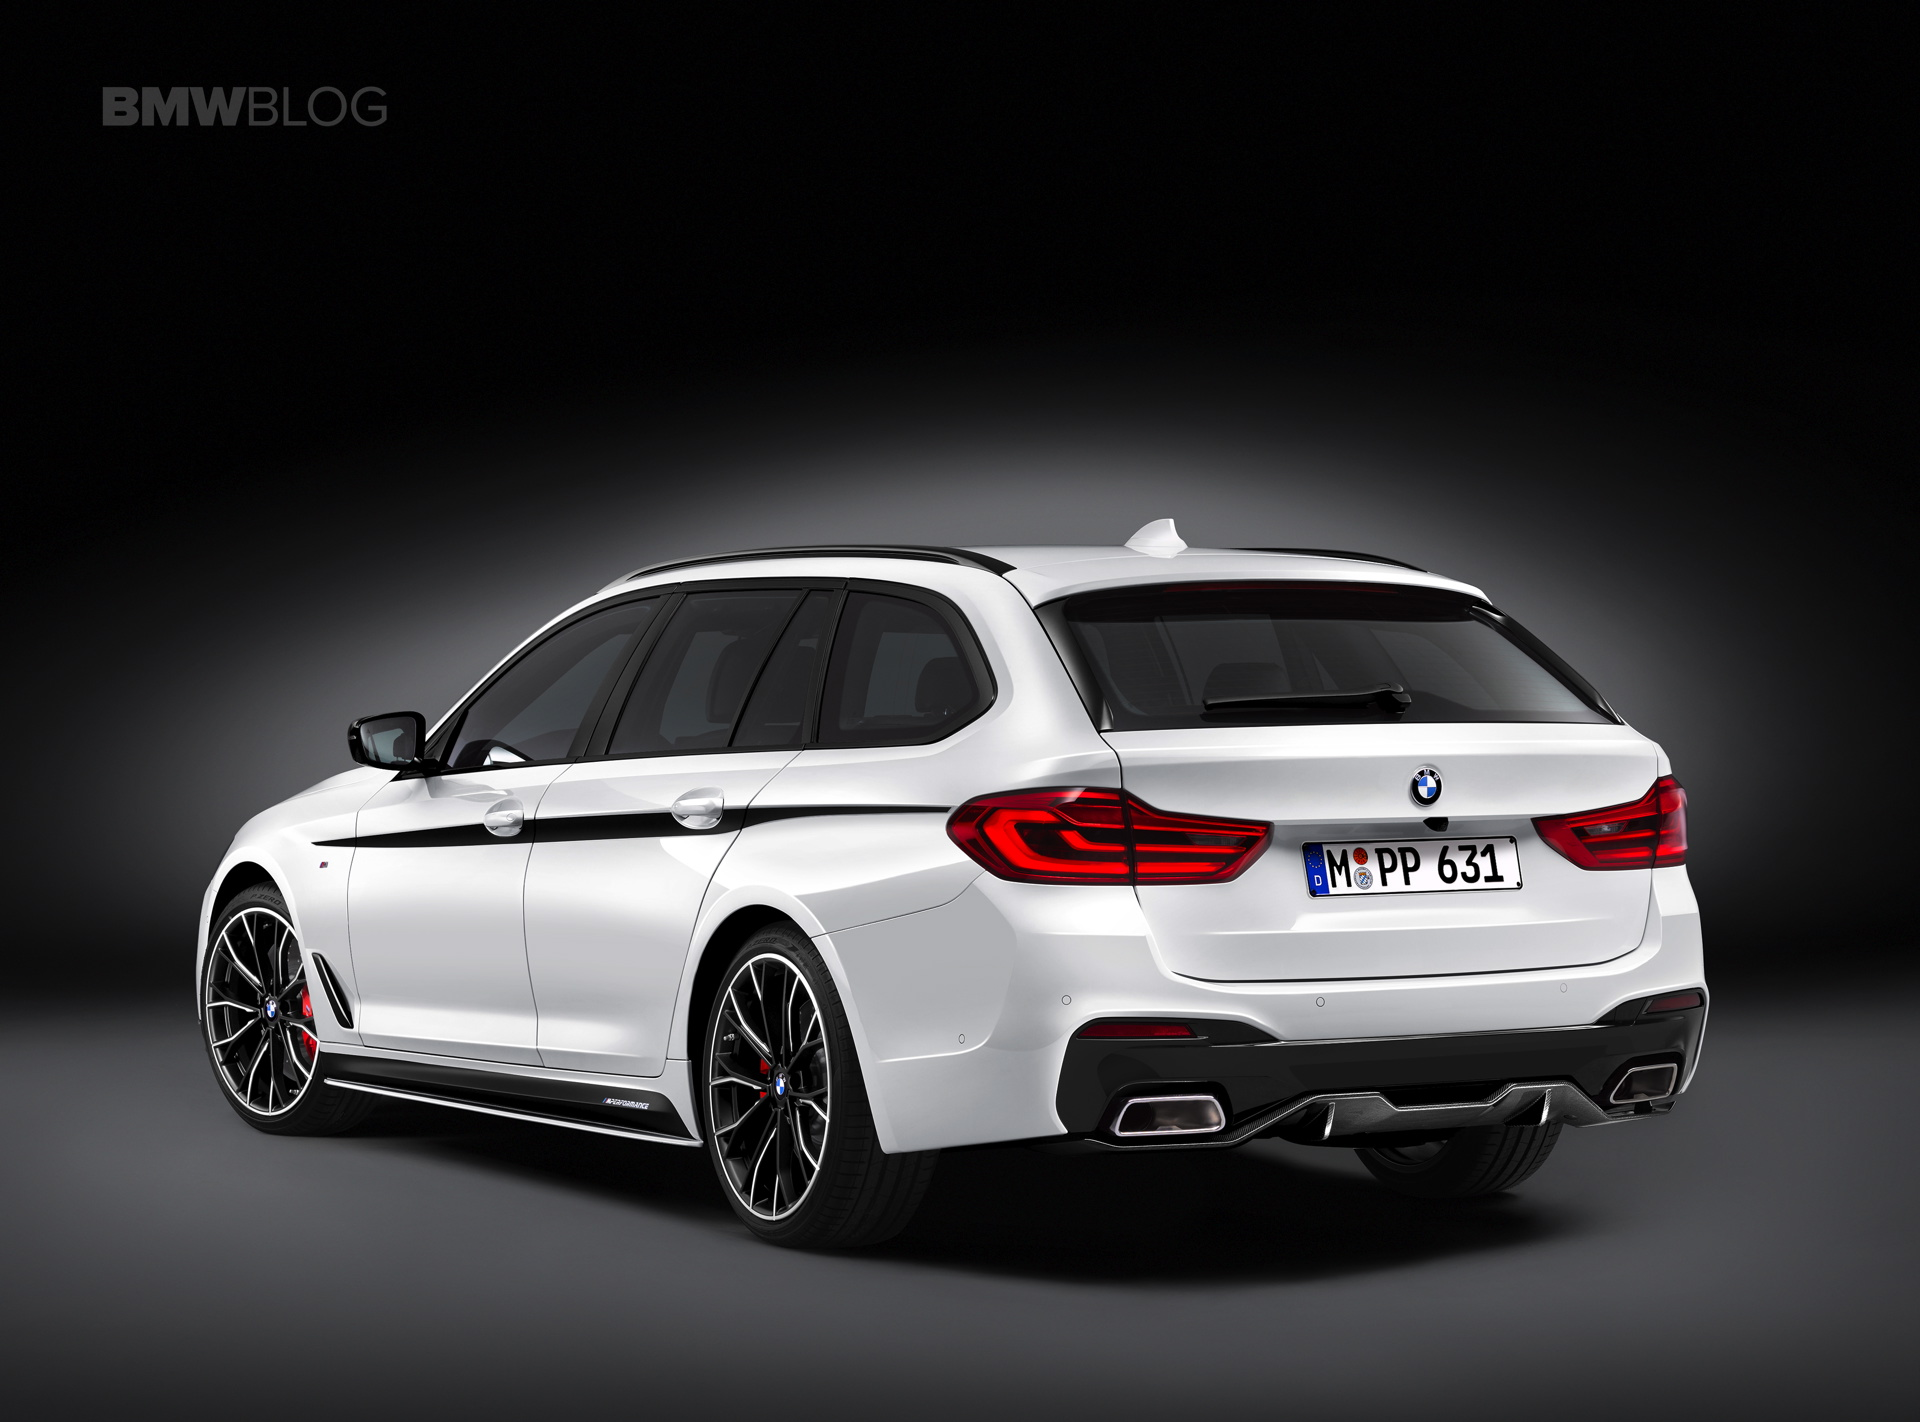 Bmw 5 Series Touring Xdrive Bmw M Performance Parts For The New Bmw 5 Series Touring